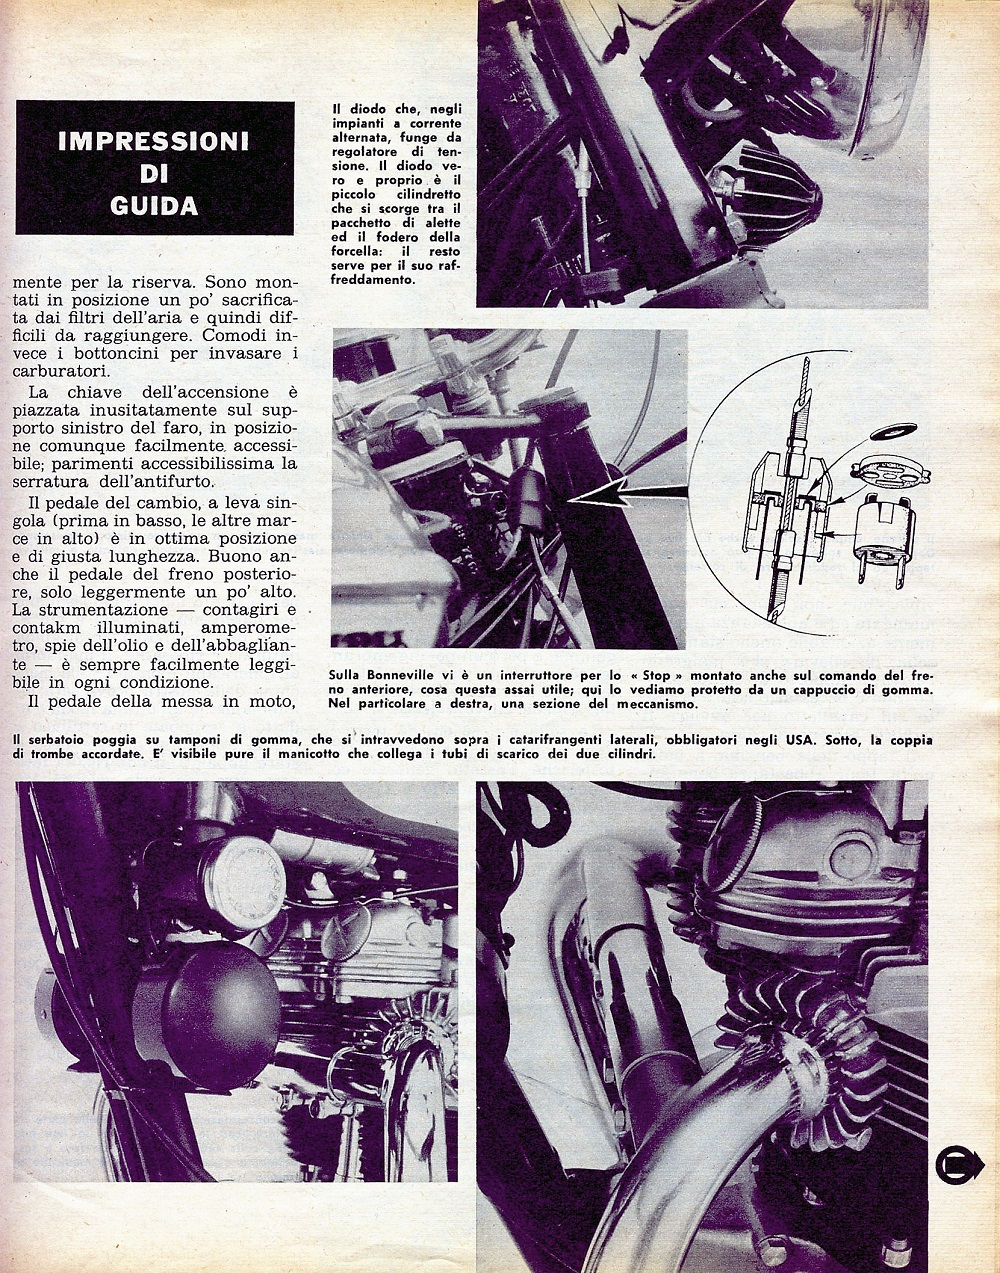 1969 Triumph Bonneville road test. 4.jpg